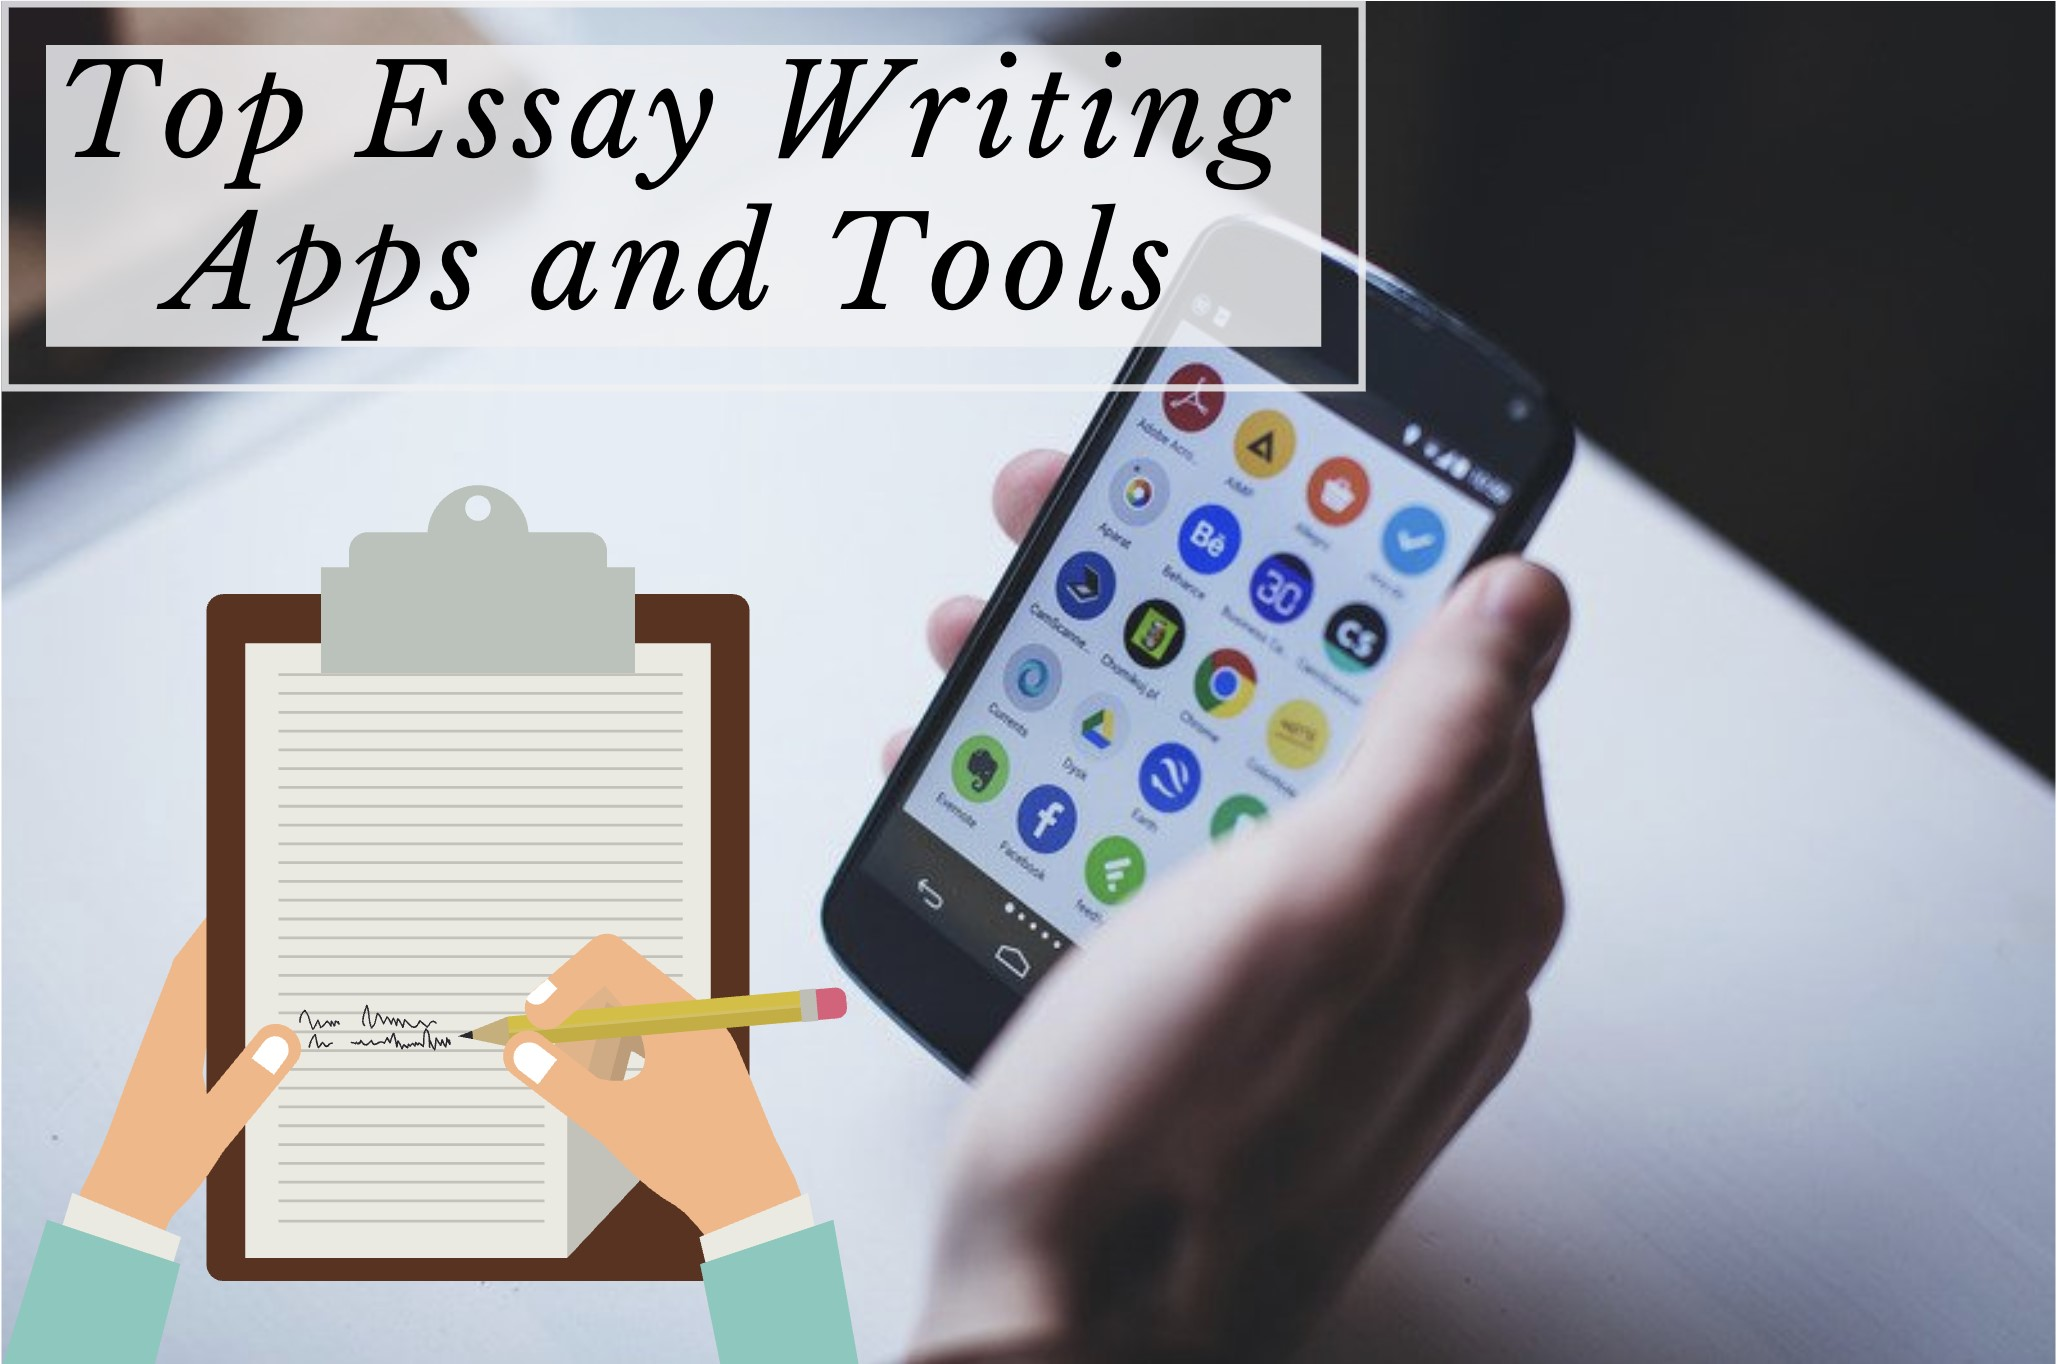 What are the requirements for essay writing services? - appPicker